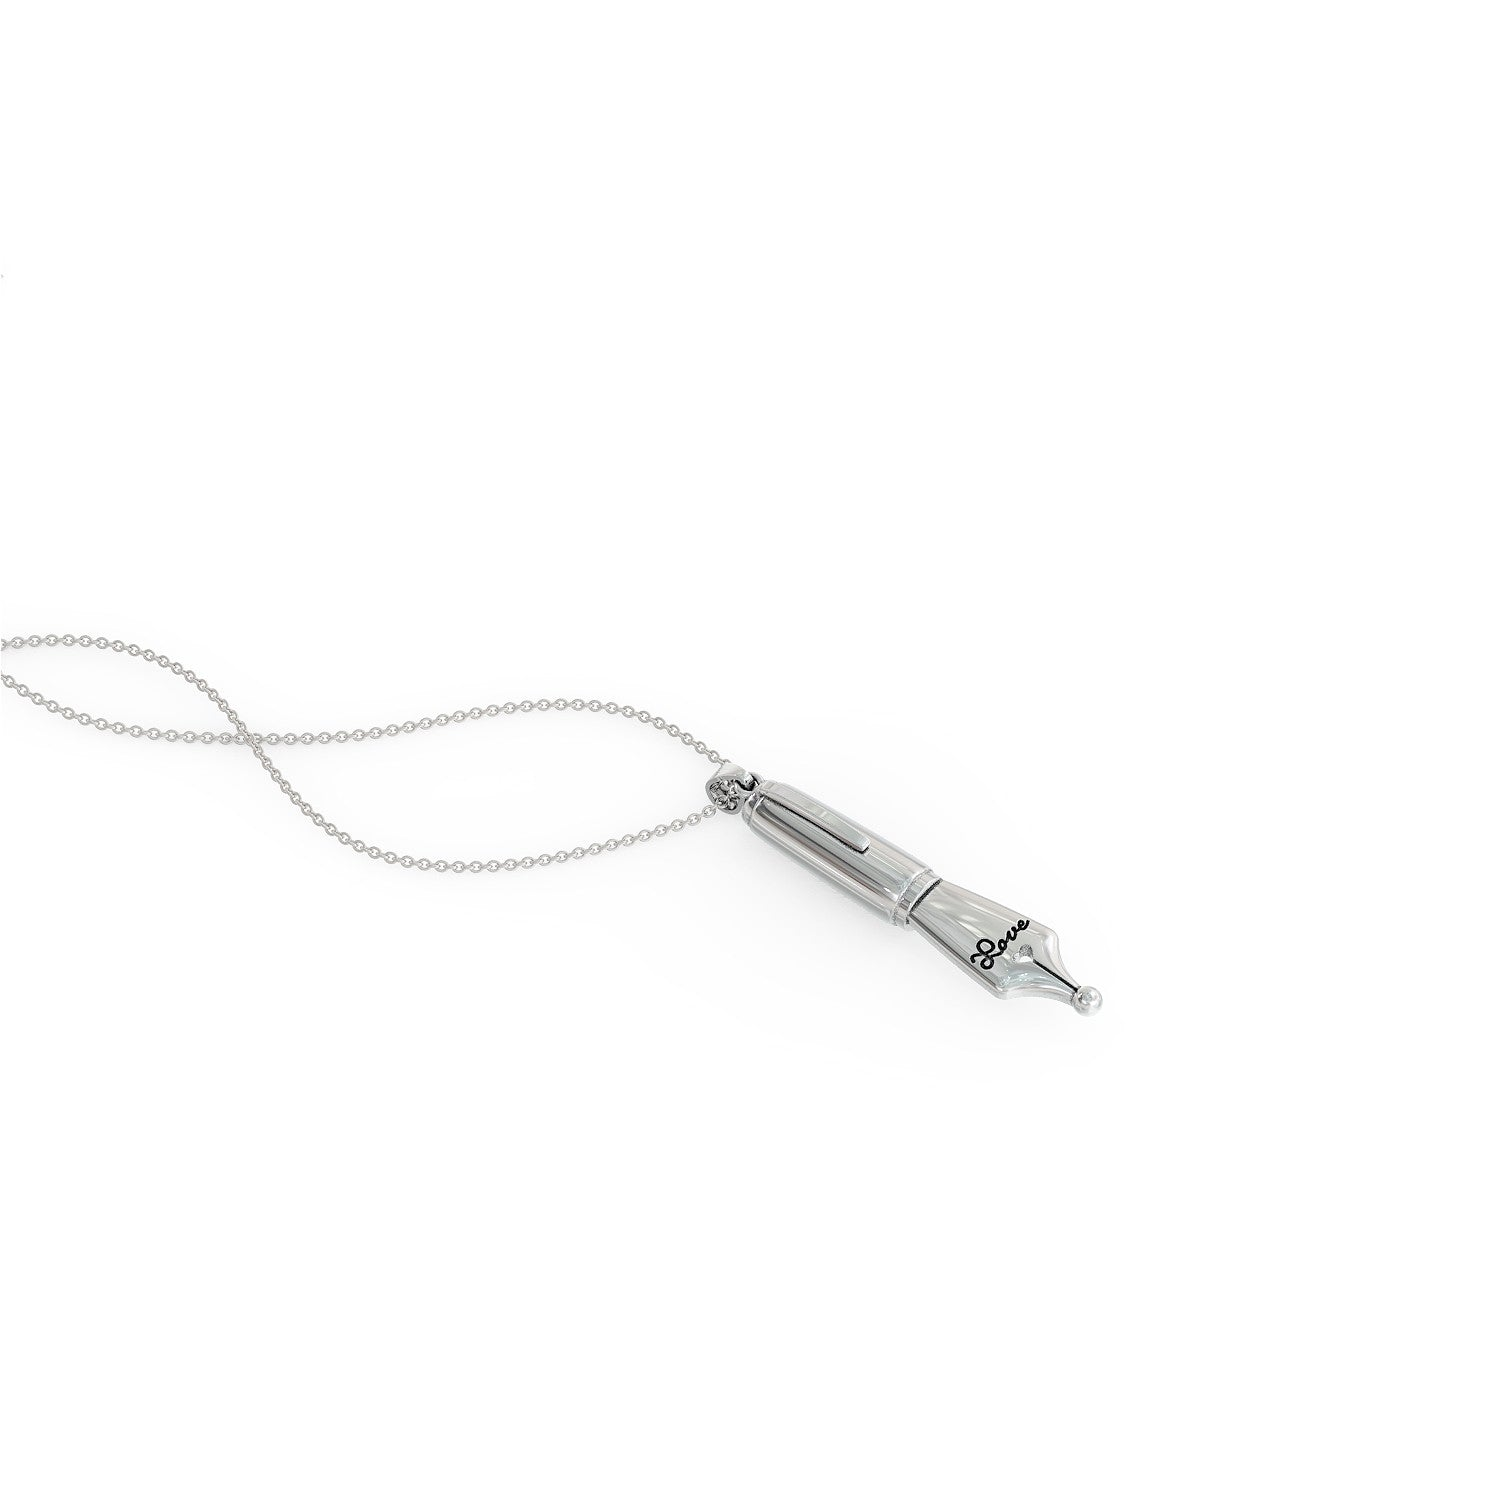 Fountain Pen Necklace